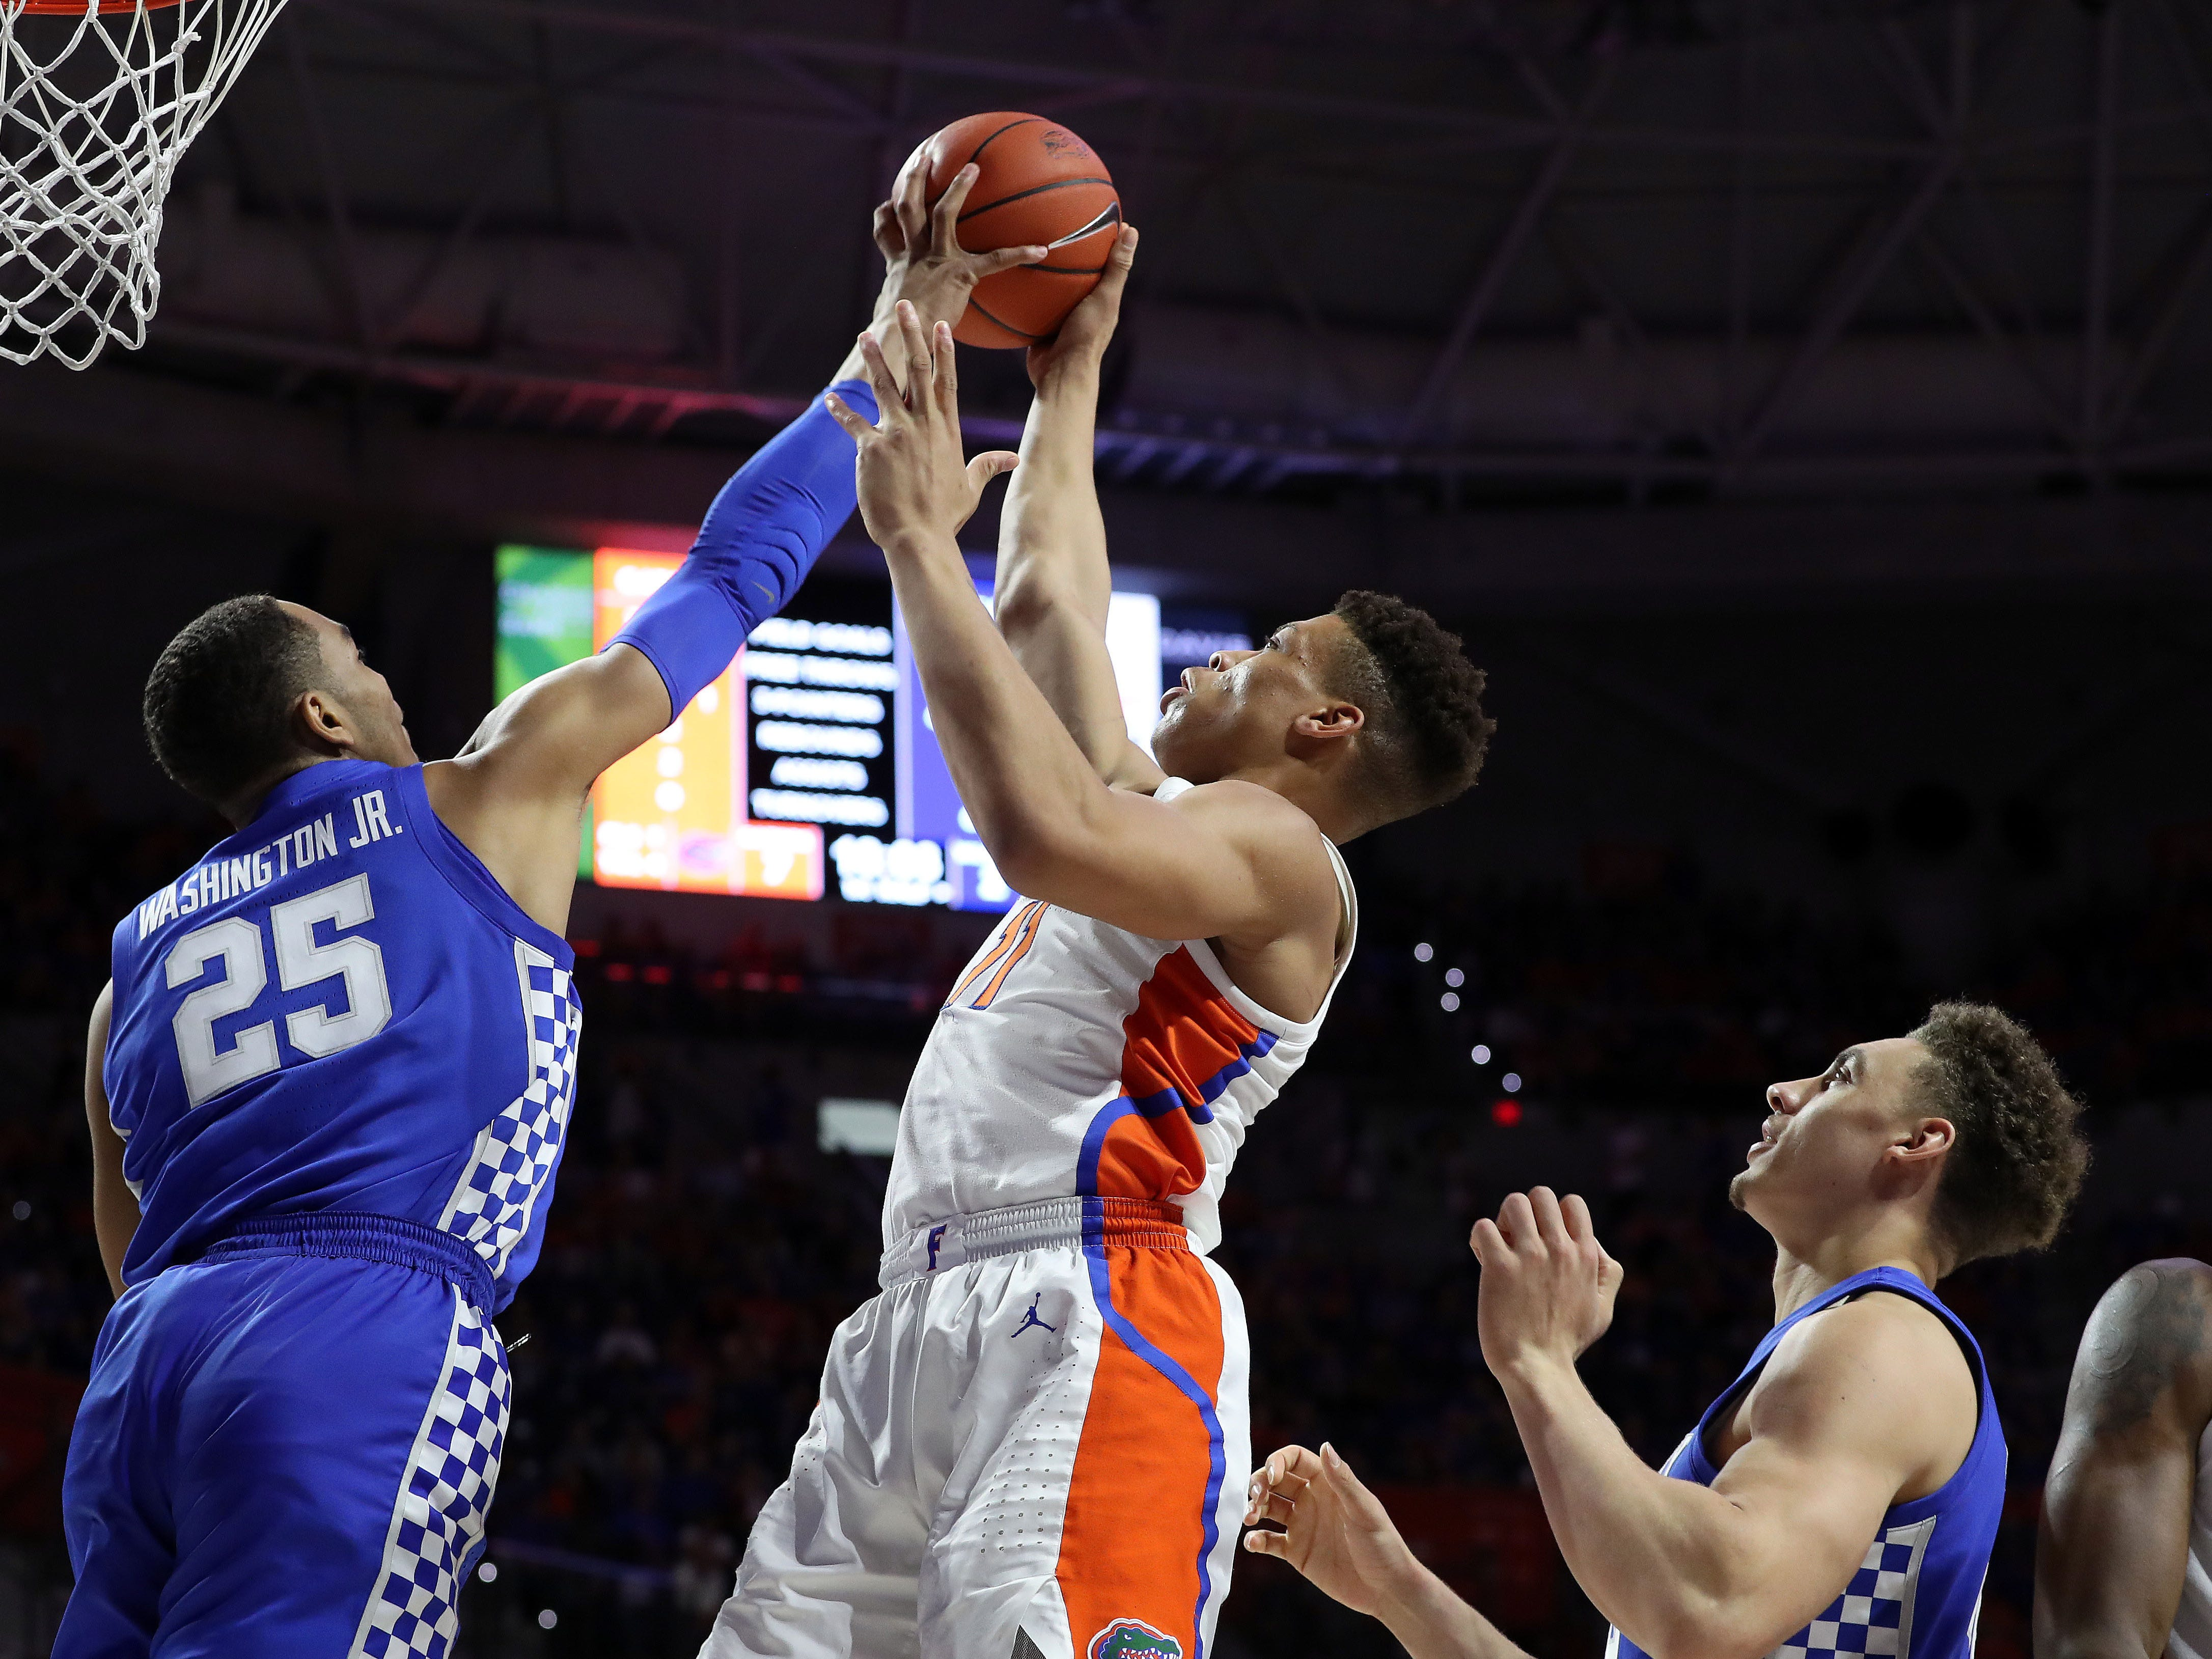 Kentucky Wildcats forward PJ Washington (25) blocks Florida Gators forward Keyontae Johnson (11) shot during the first half at Exactech Arena in Gainesville, Florida, on Saturday, Feb. 2, 2019.